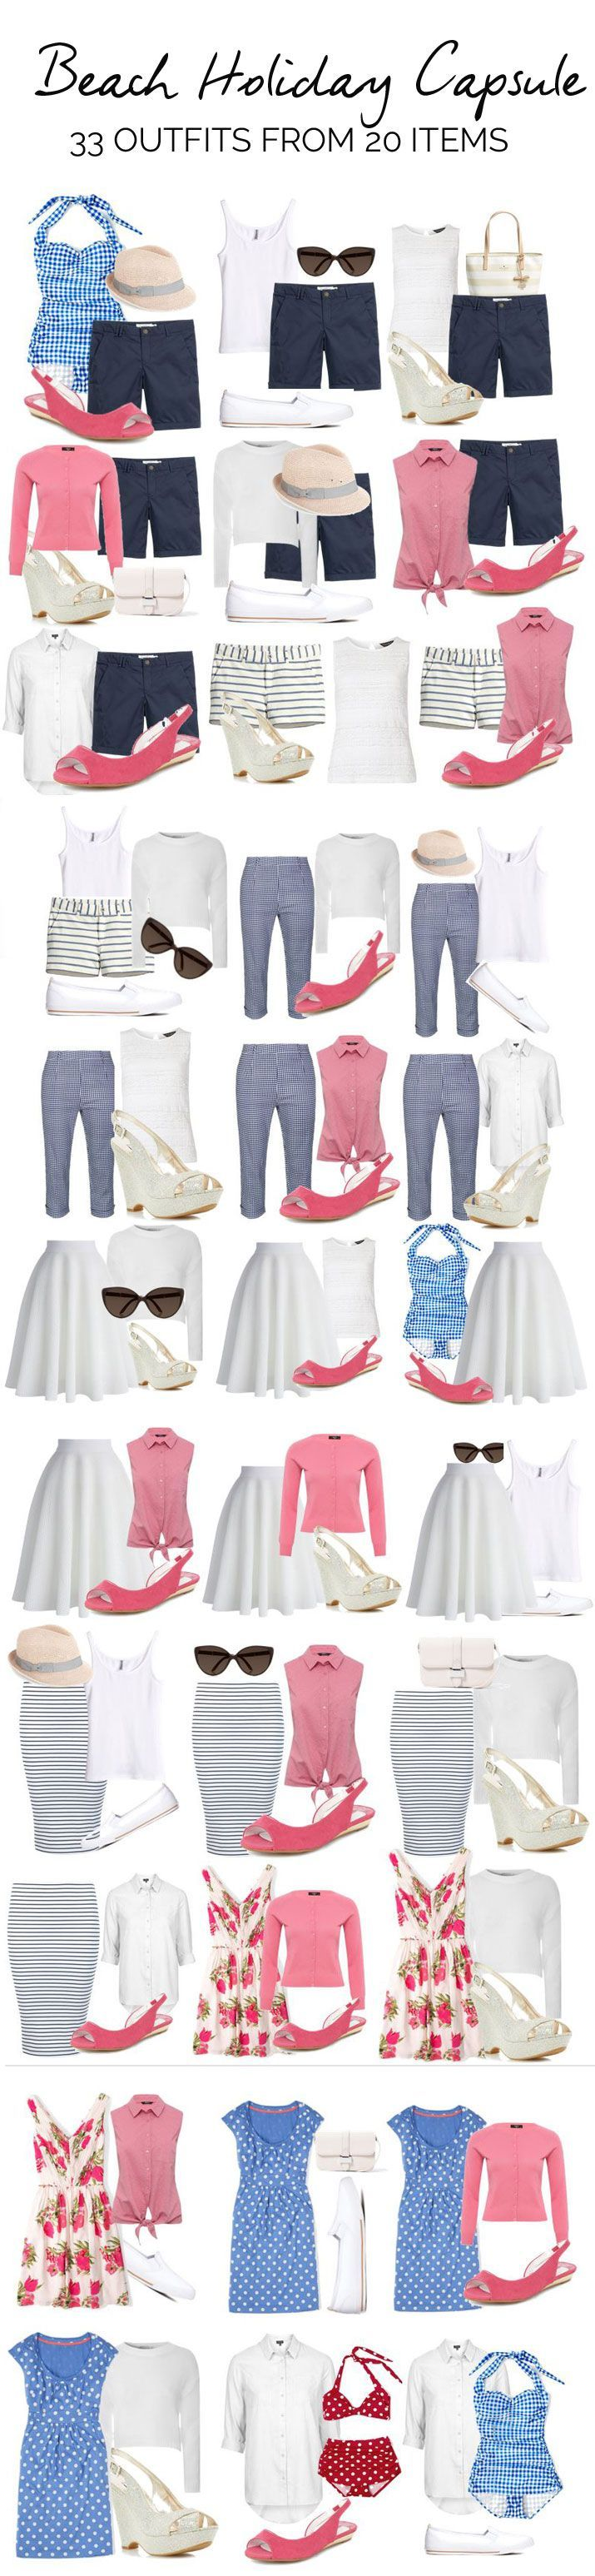 beach holiday capsule wardrobe: what to pack for a beach vacation // Fashion Style Ideas